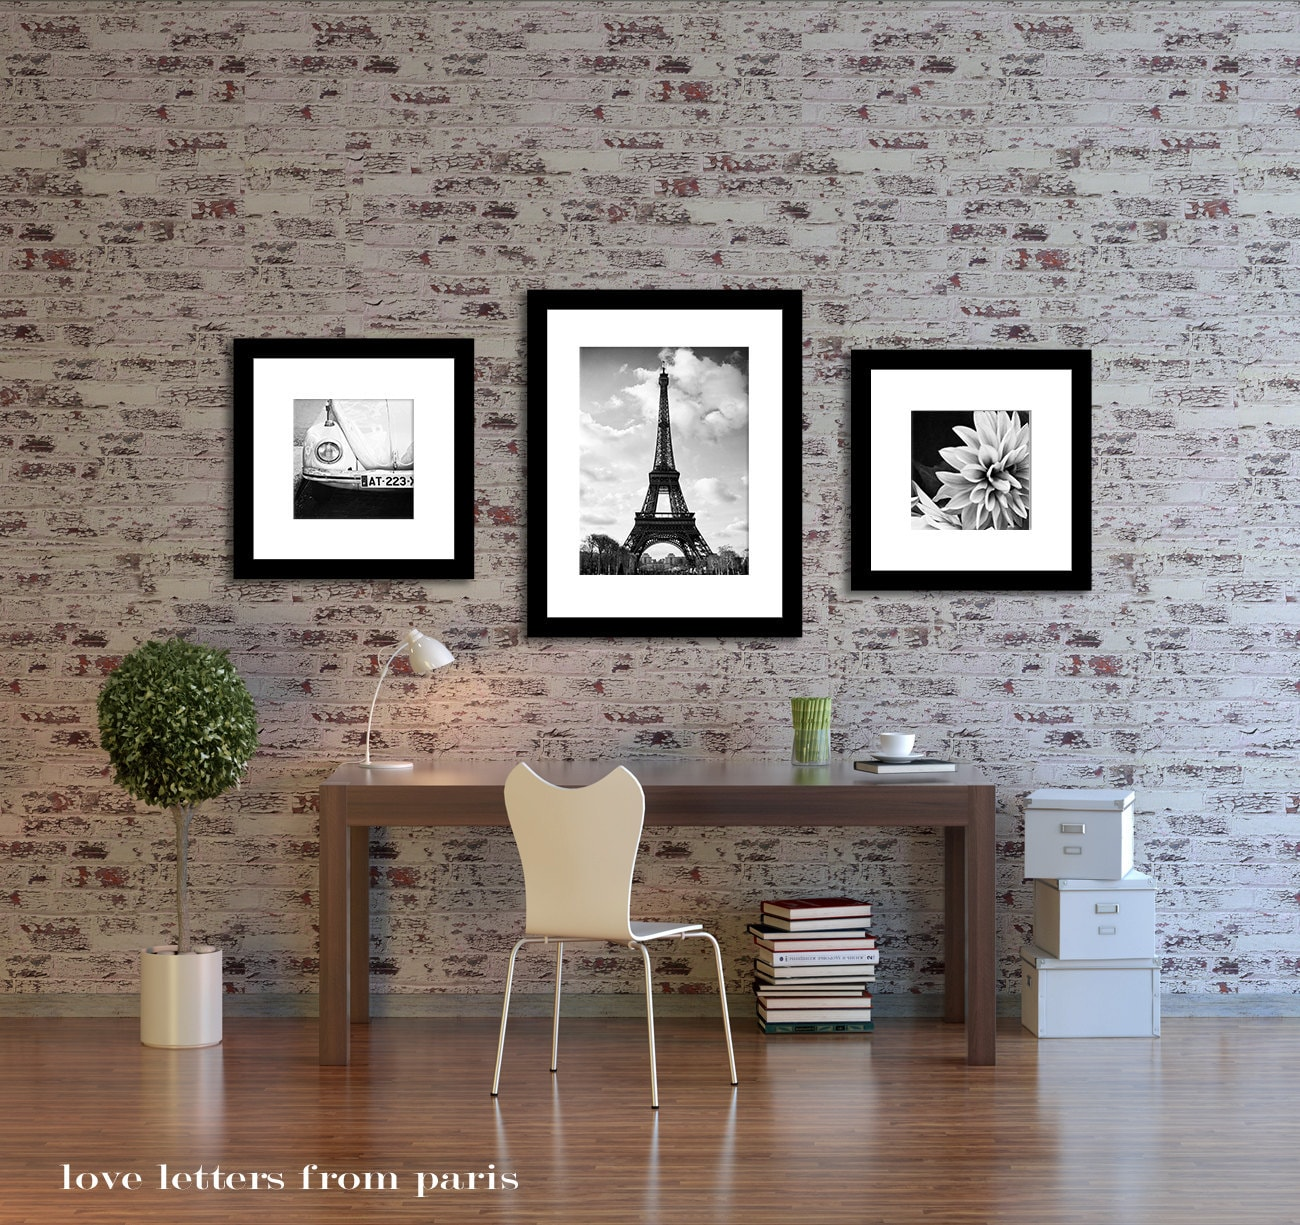 Paris photograph home decor paris wall art paris decor for Www decorations home